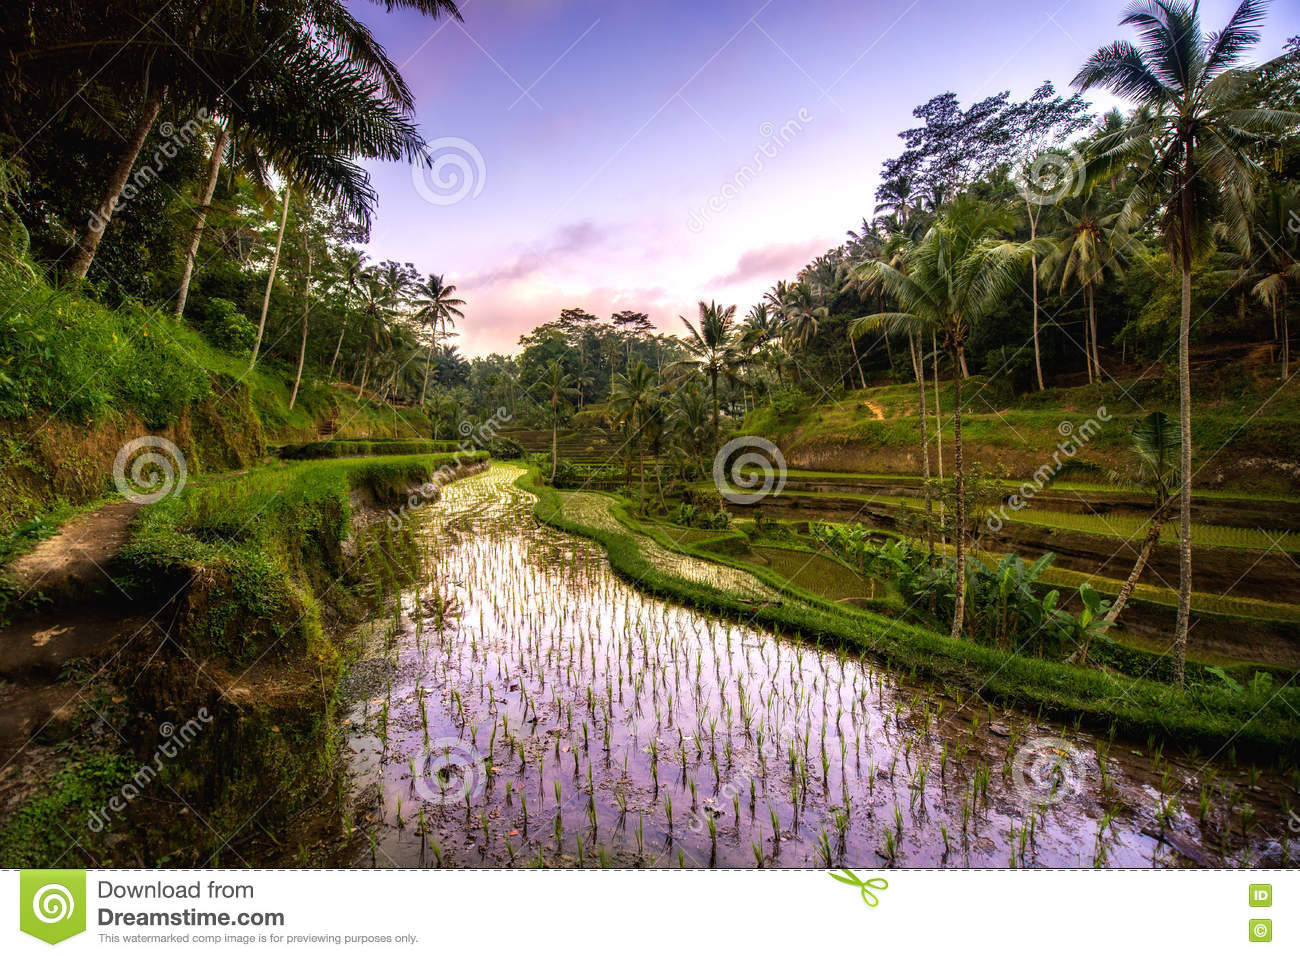 reflection of sunset colors in rice terrace valley in Ubud village, Bali, Indonesia. Agricultural field of rice terraces